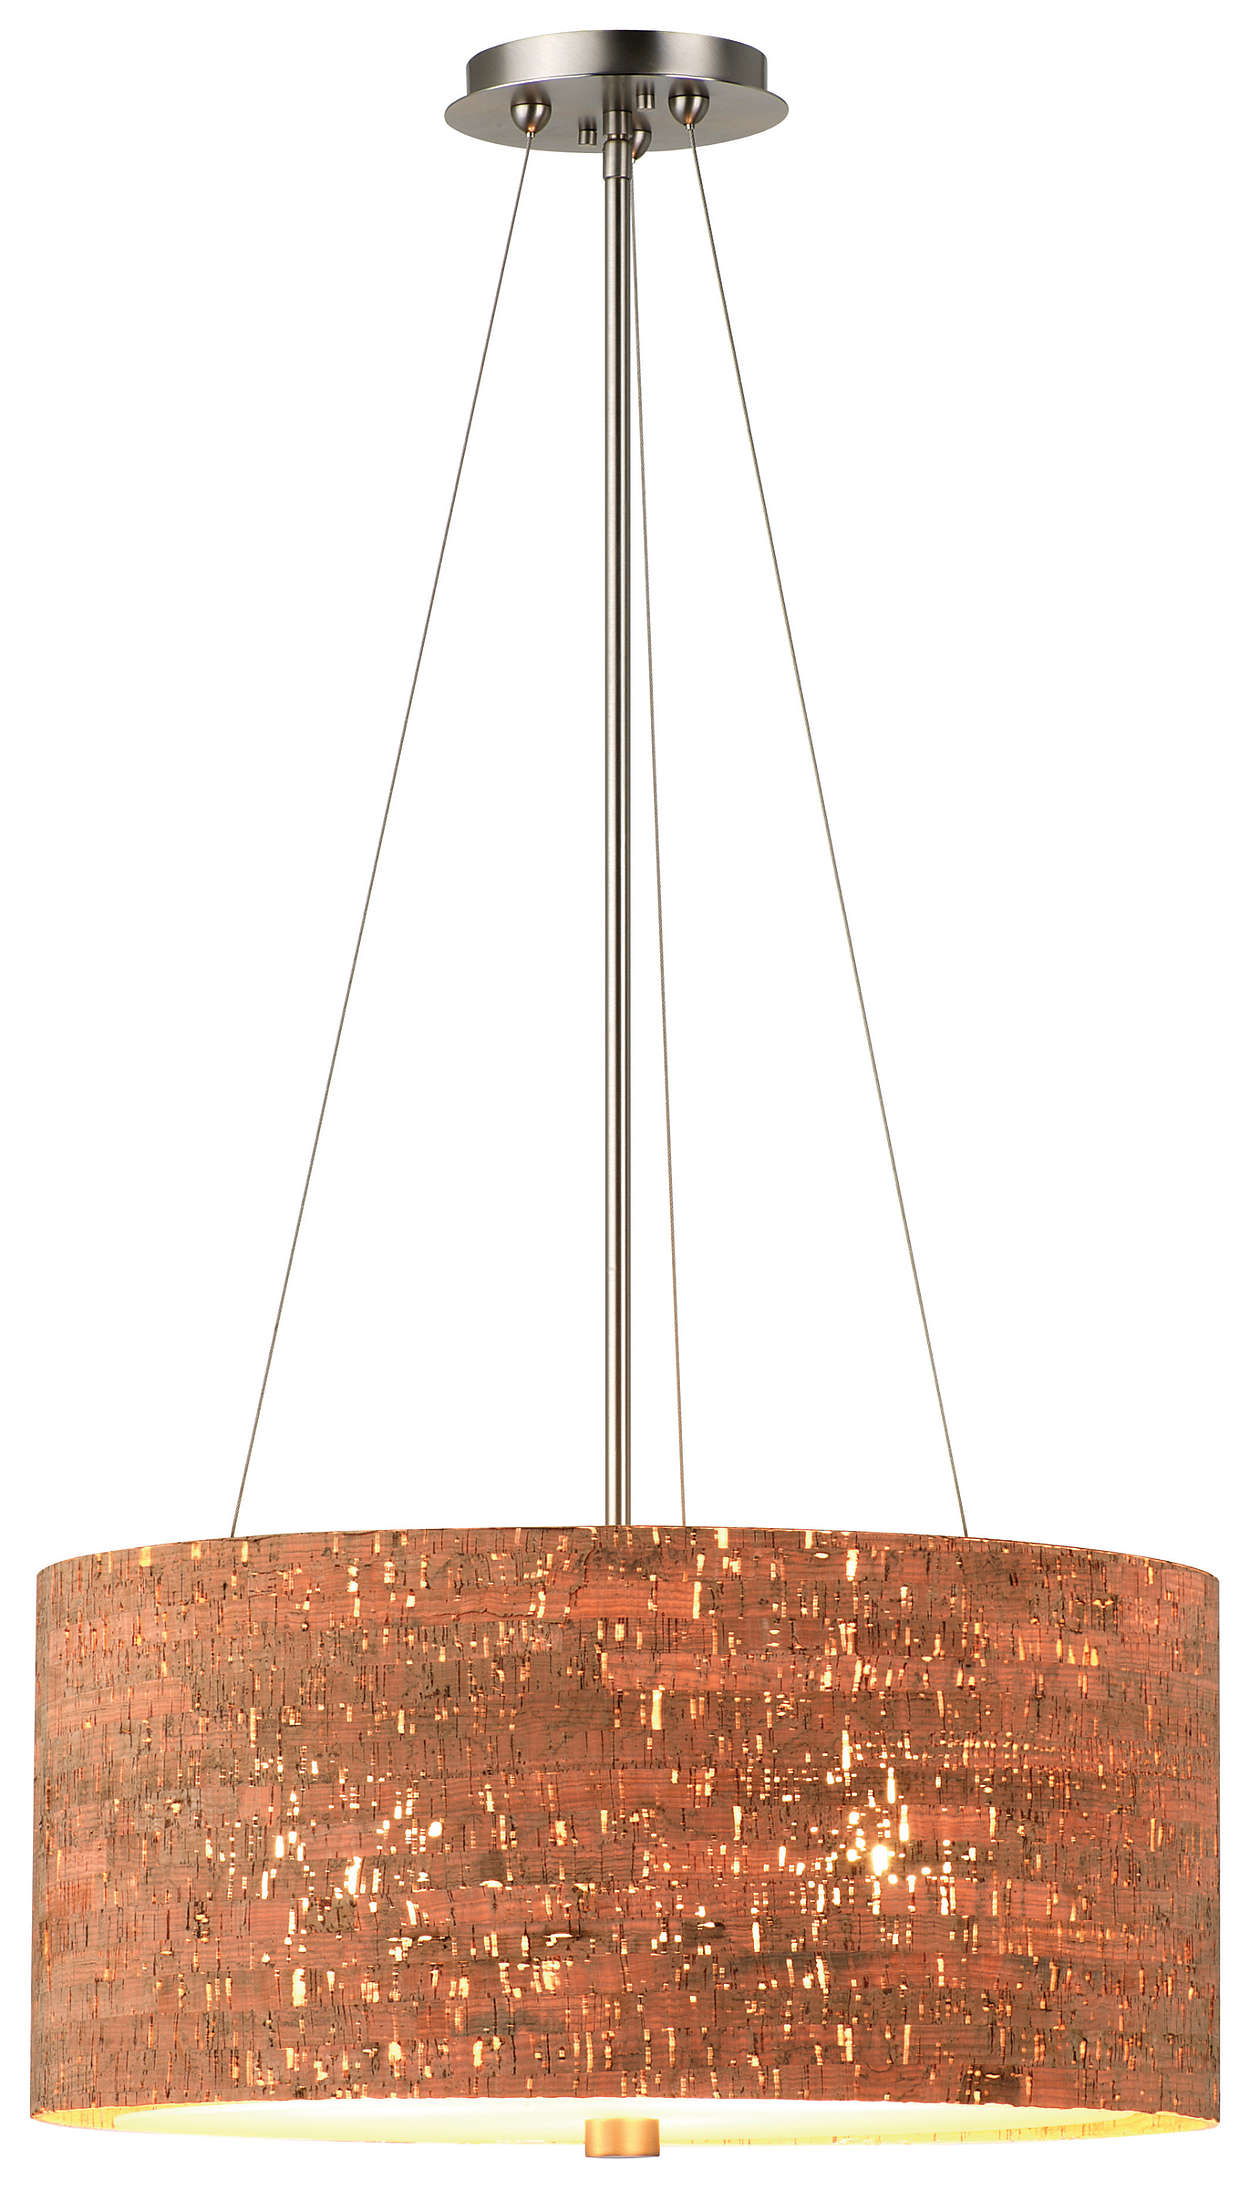 Alentejo 3-light Pendant in Satin Nickel finish